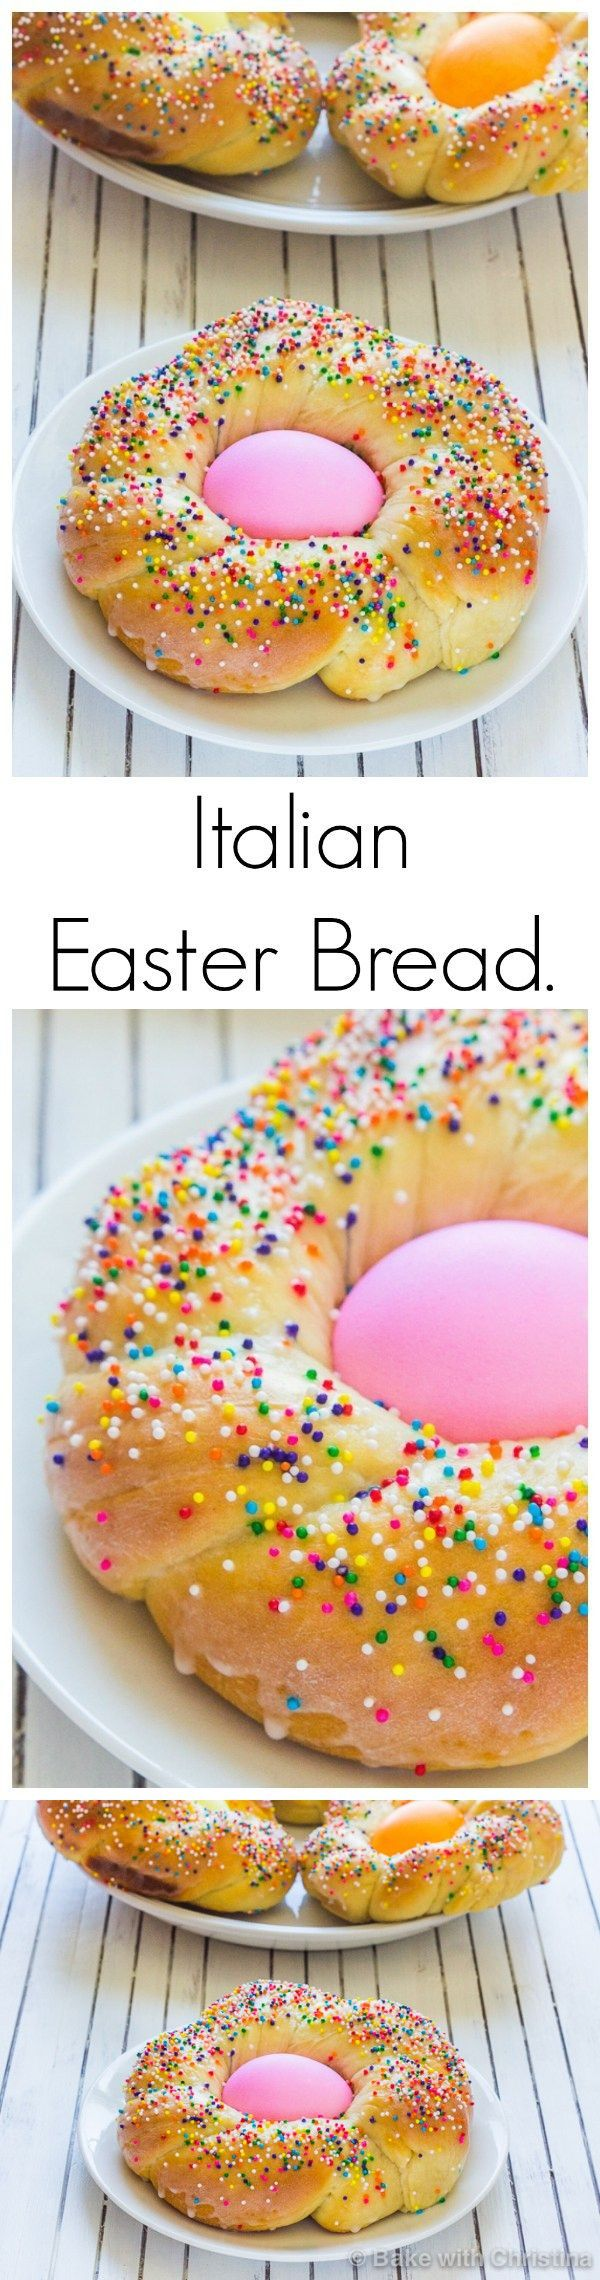 10 Egg. 2 tsp Lemon juice. 1/2 tsp Anise extract. 5 cups Flour. 1 cup Powdered sugar. 1 package Rapid rise instant yeast. 1 Pinch Salt. 1/2 cup Sugar. 1/2 tsp Vanilla extract. 3/4 cup Butter, unsalted. 1 1/8 cup Whole milk. 1 Rainbow nonpareils.